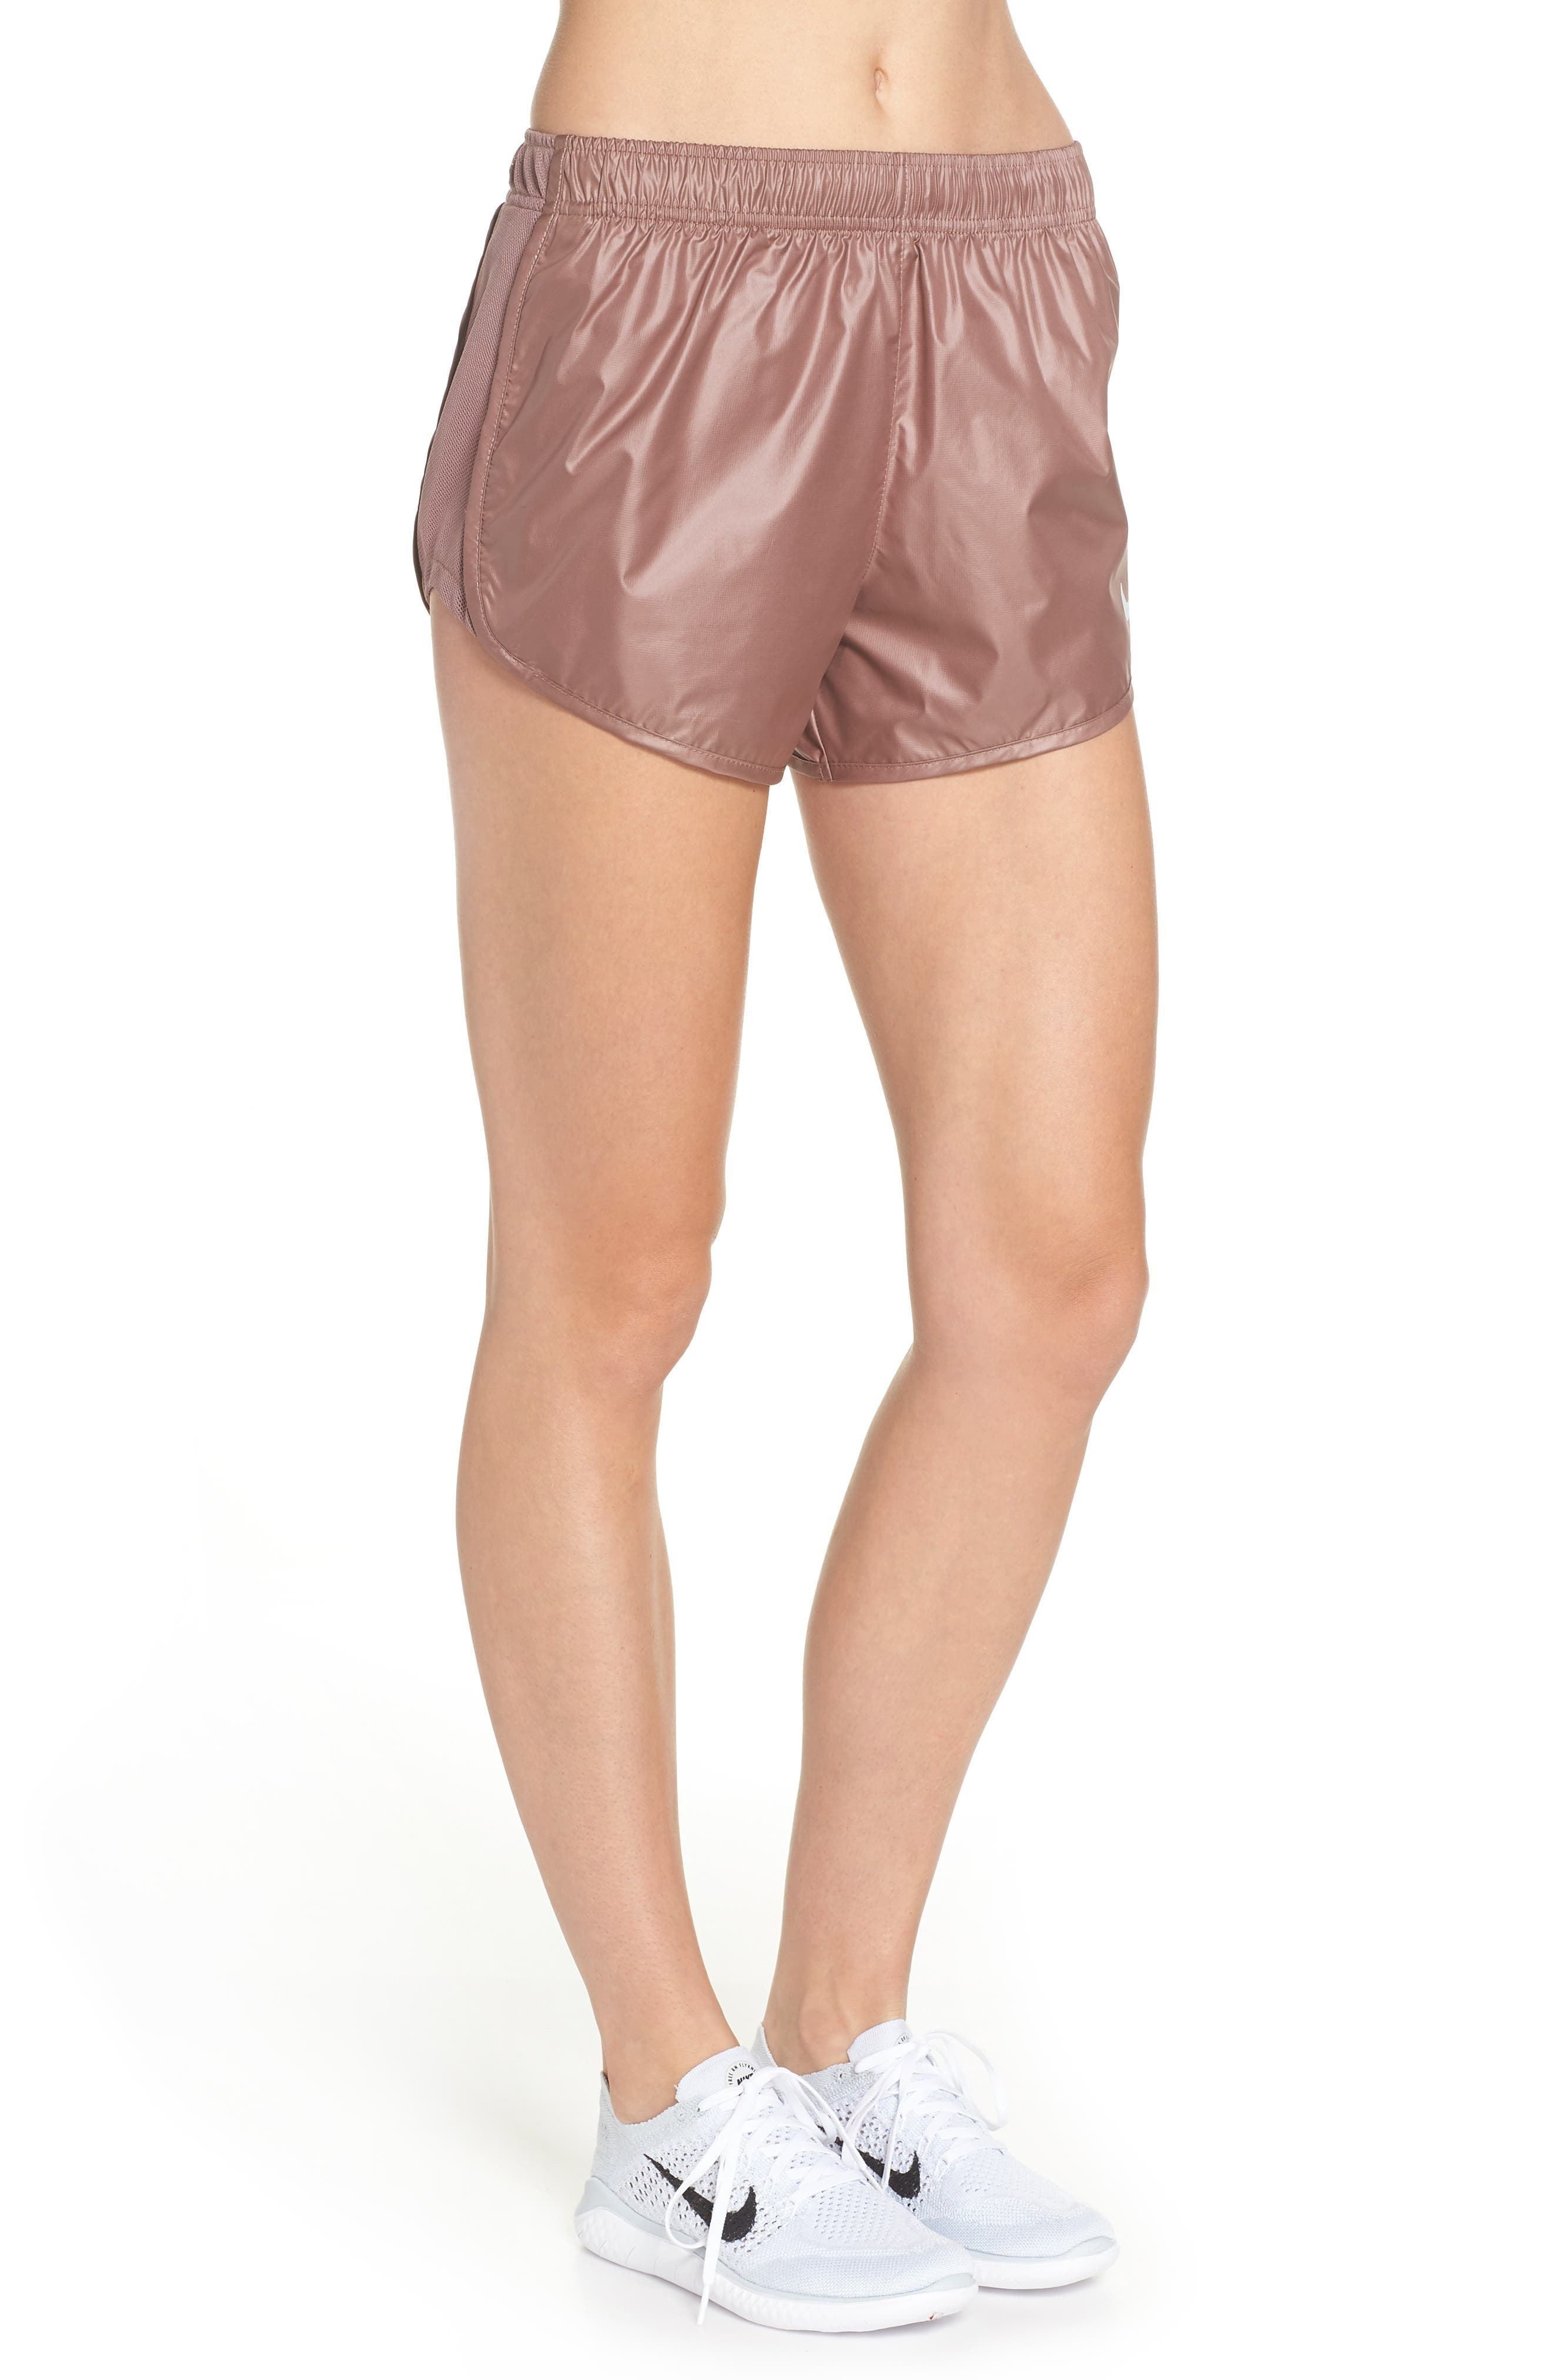 Tempo Running Shorts,                             Alternate thumbnail 3, color,                             SMOKEY MAUVE